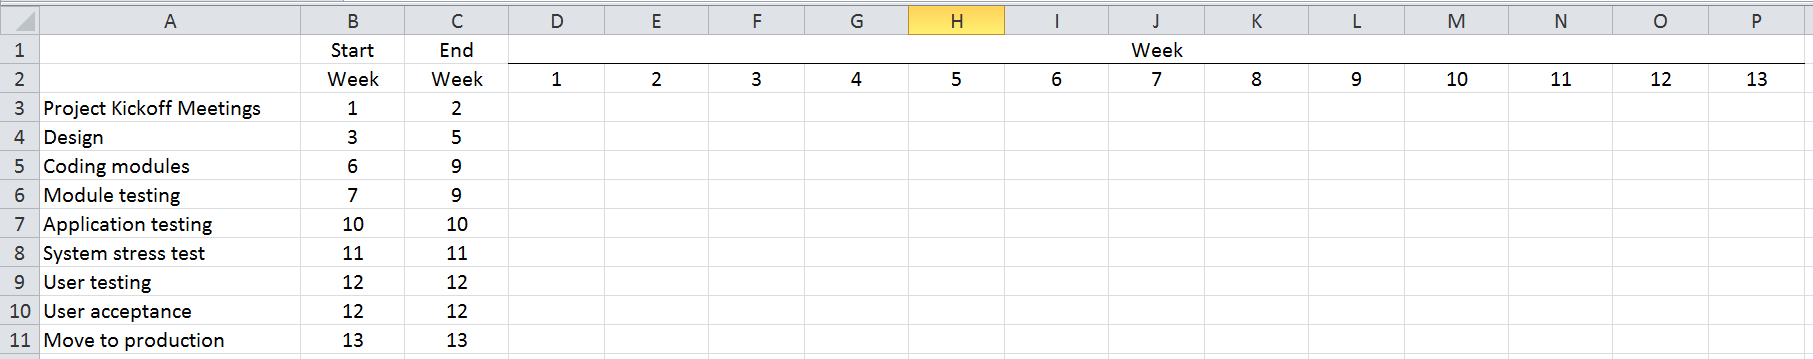 gantt chart using excel